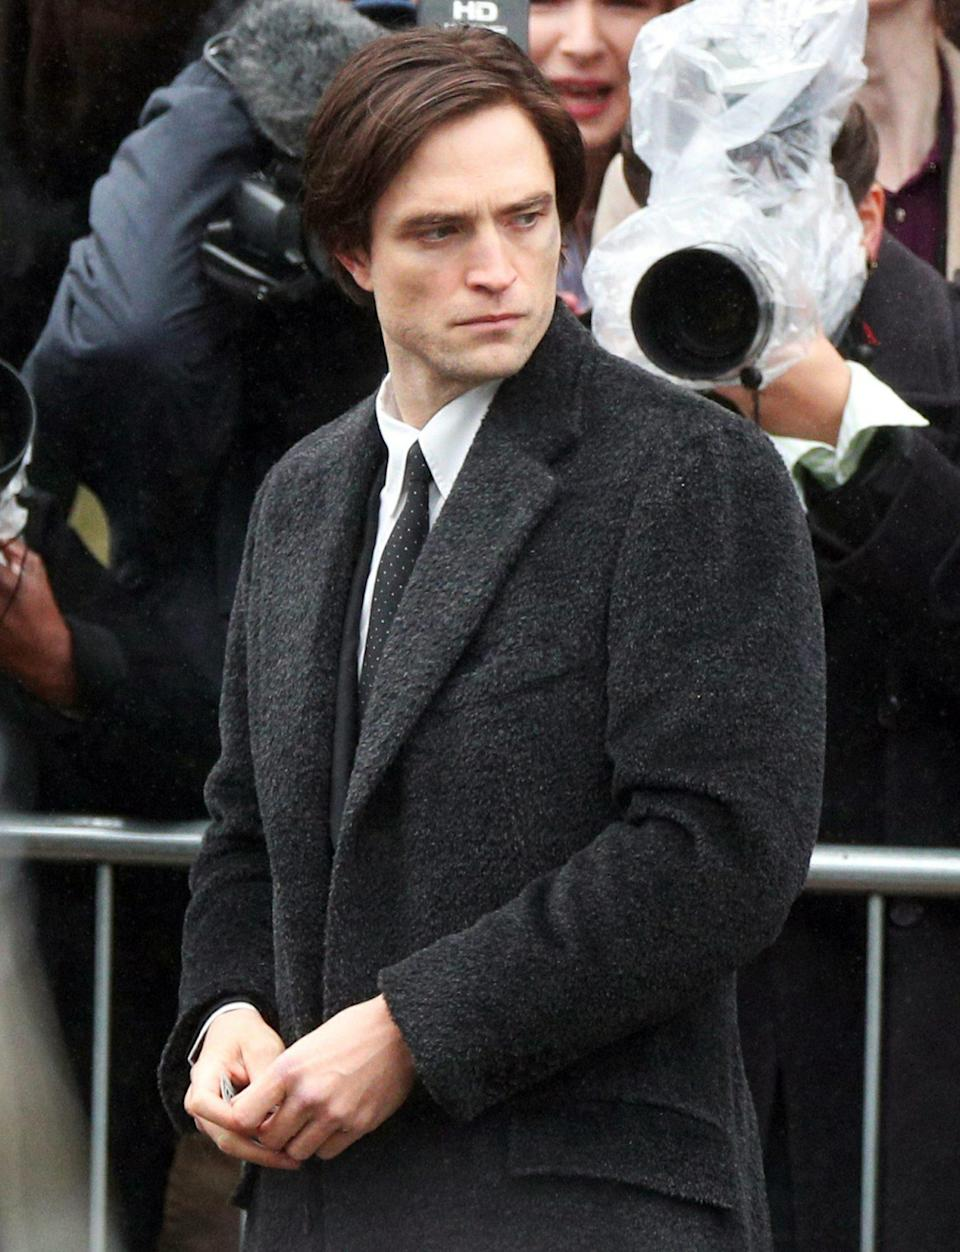 <p>Robert Pattinson is seen on Monday outside of St. George's Hall in Liverpool, London filming scenes for <em>Batman</em>.</p>